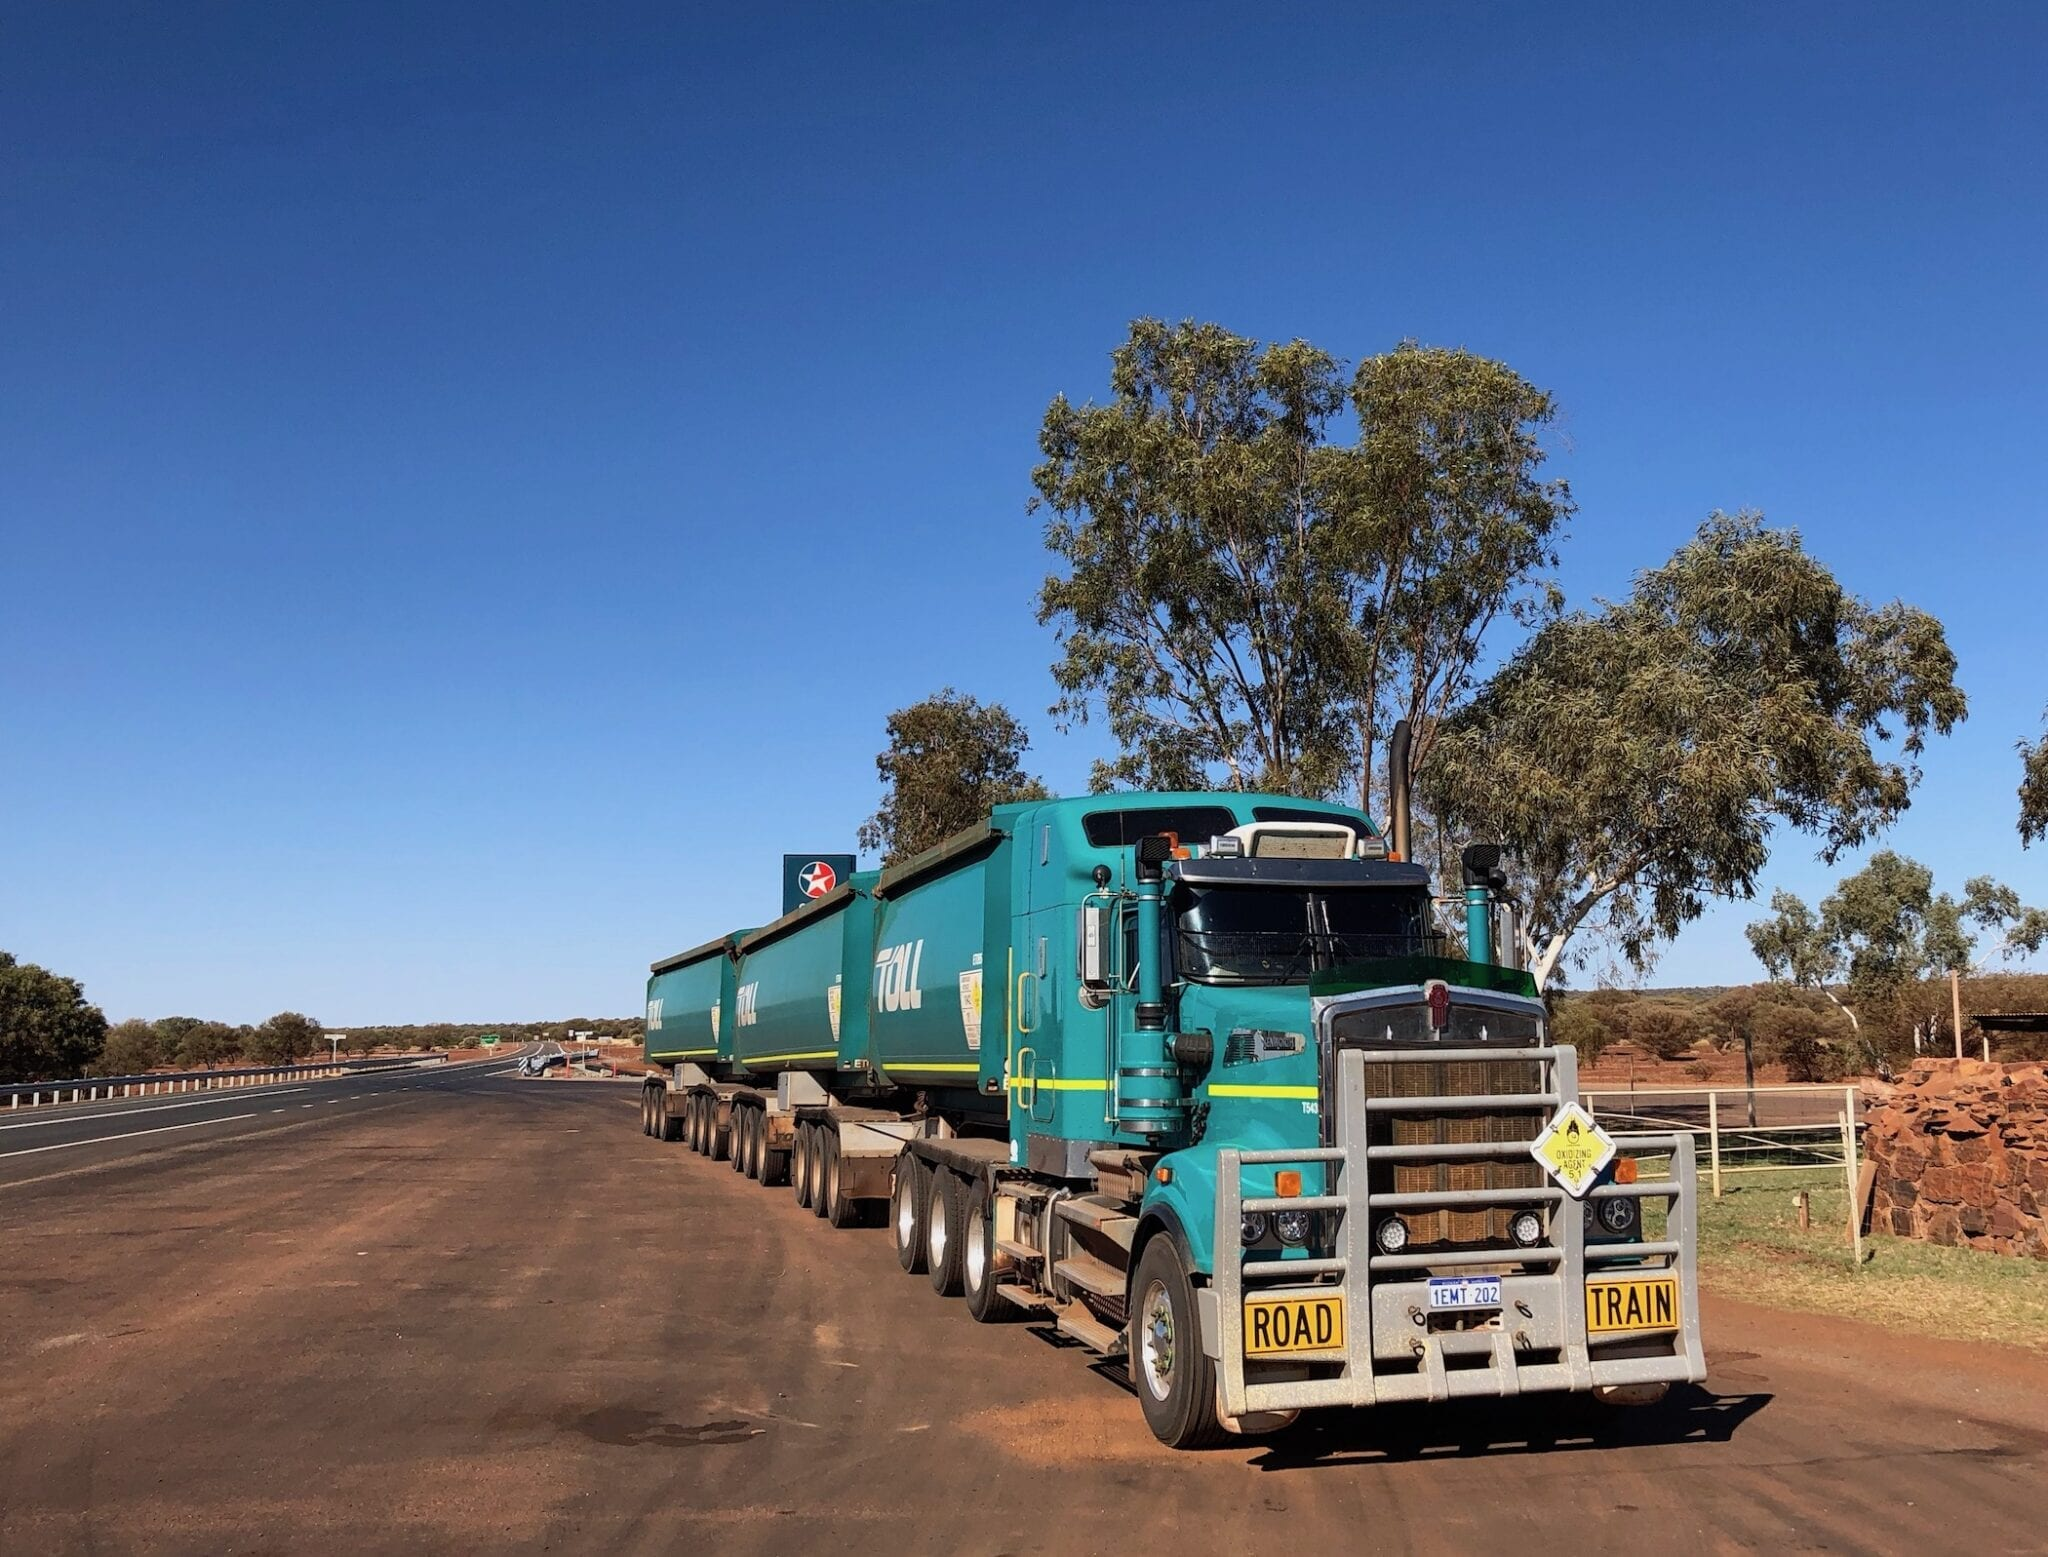 A road train in the Pilbara of Western Australia. Being road safety aware is crucial when sharing the road with trucks.